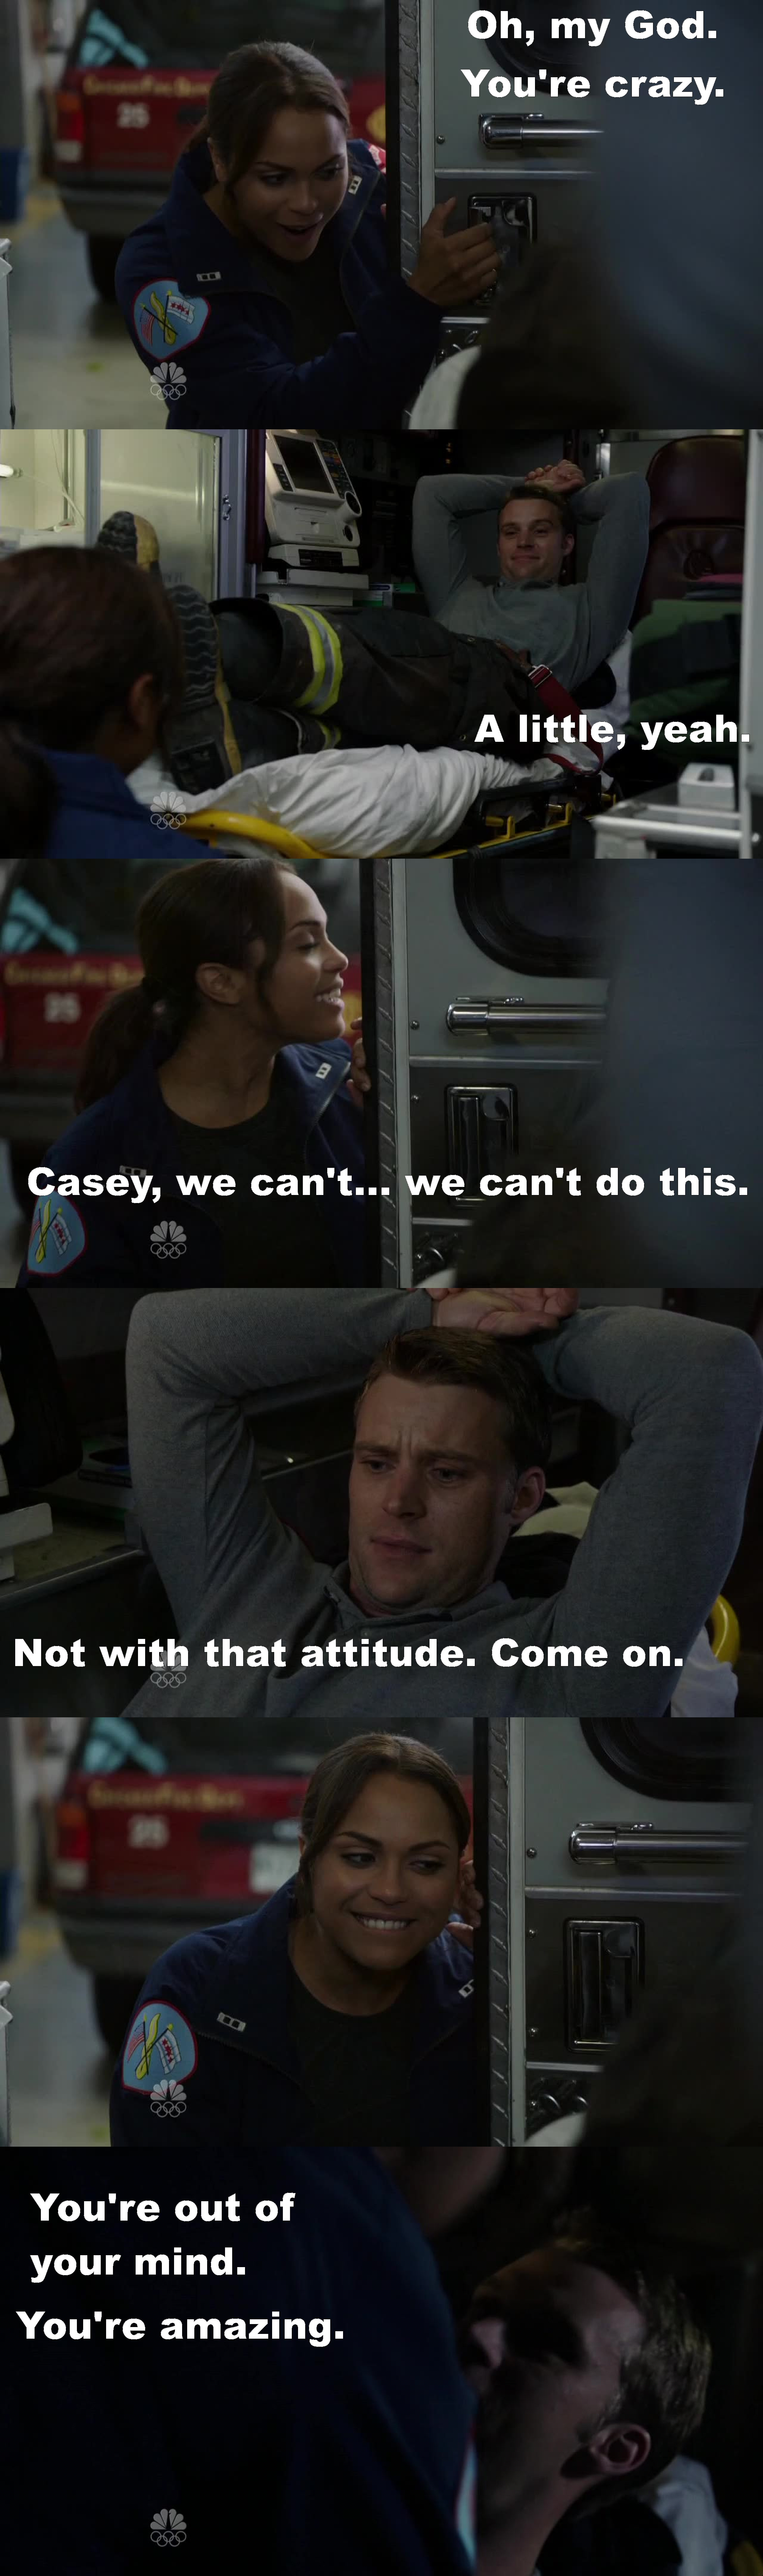 So amazing moment!!! I loved this!!! And that she think he is crazy! That is awesome!! I love my Dawsey!!! #Matt&Gabby #Dawsey #OTP